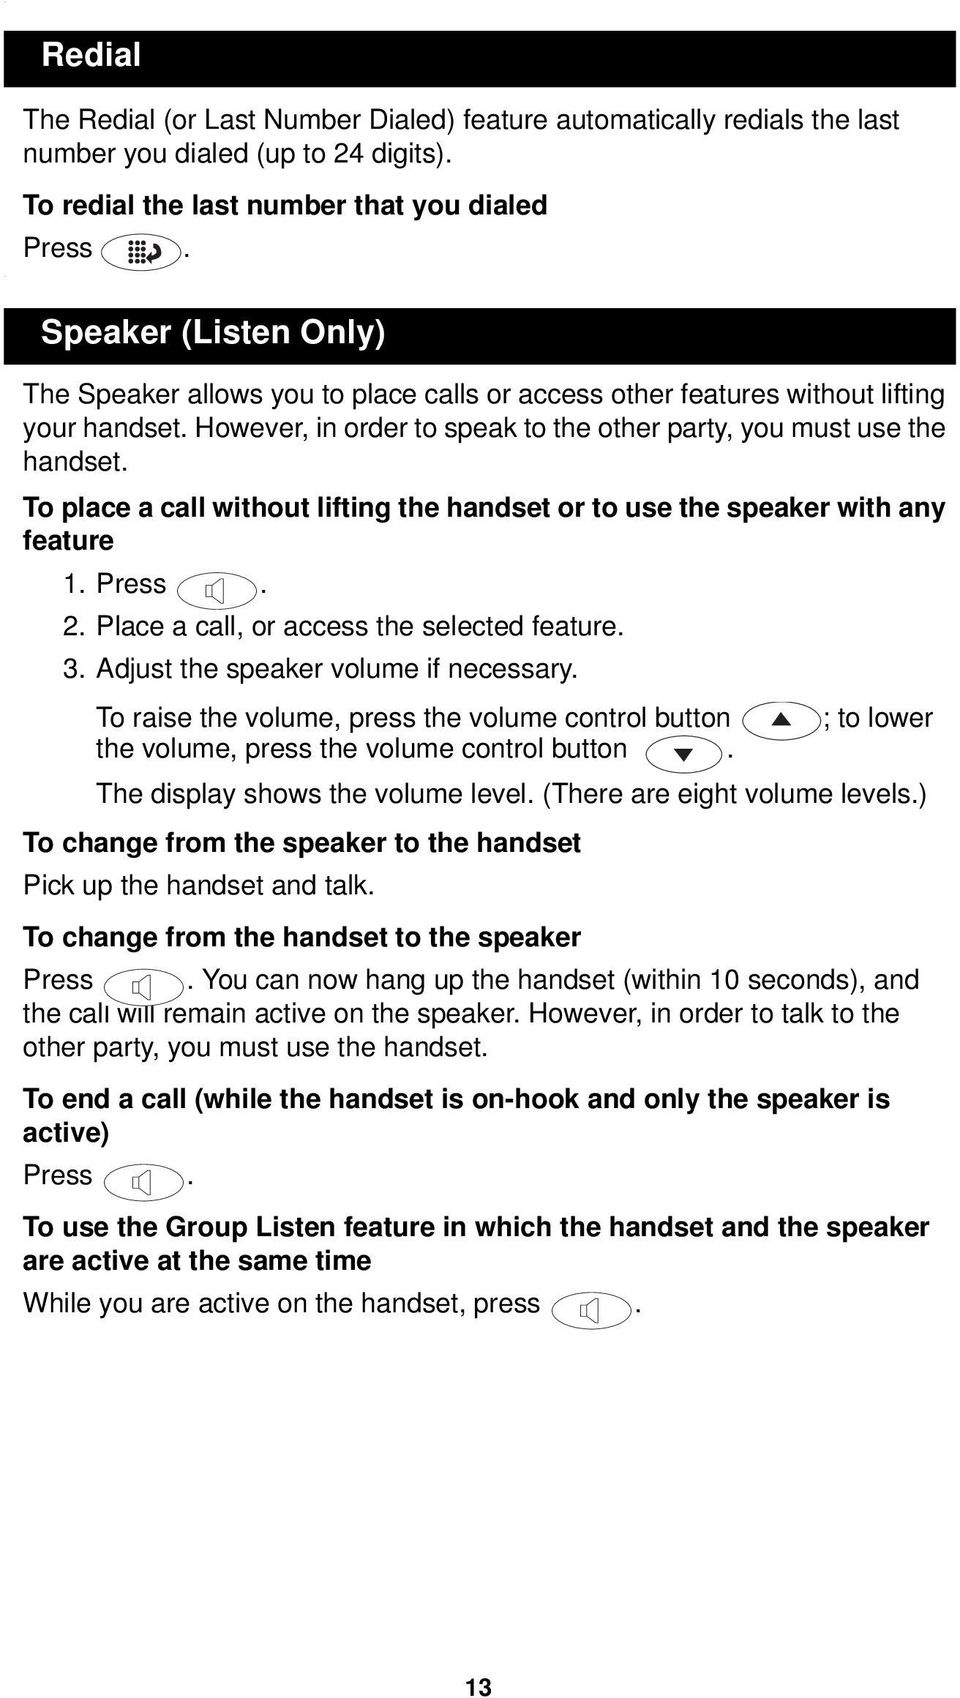 To place a call without lifting the handset or to use the speaker with any feature 1. Press. 2. Place a call, or access the selected feature. 3. Adjust the speaker volume if necessary.